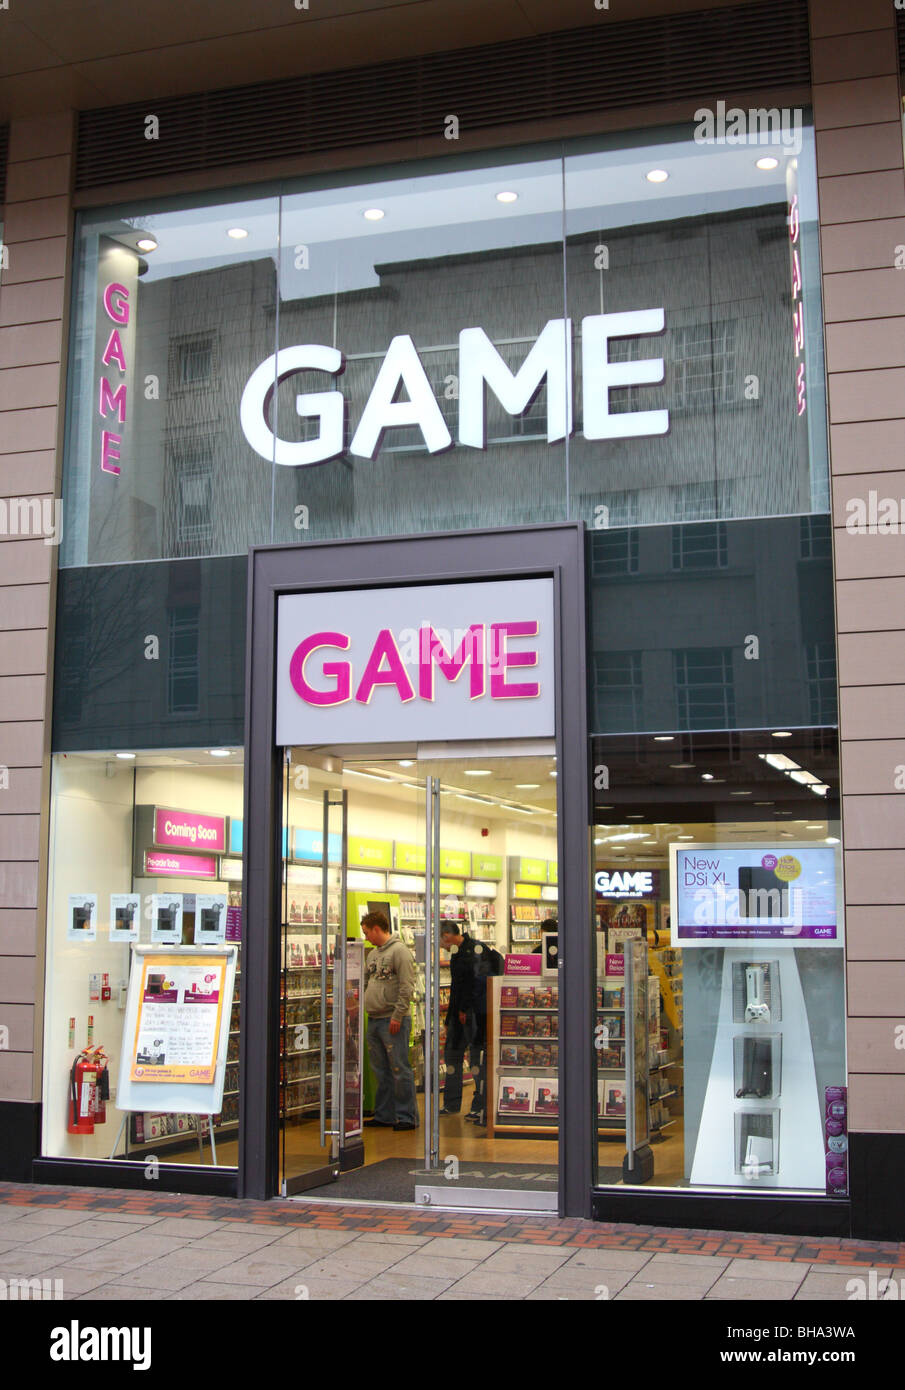 A Game retail outlet in Nottingham, England, U.K. - Stock Image